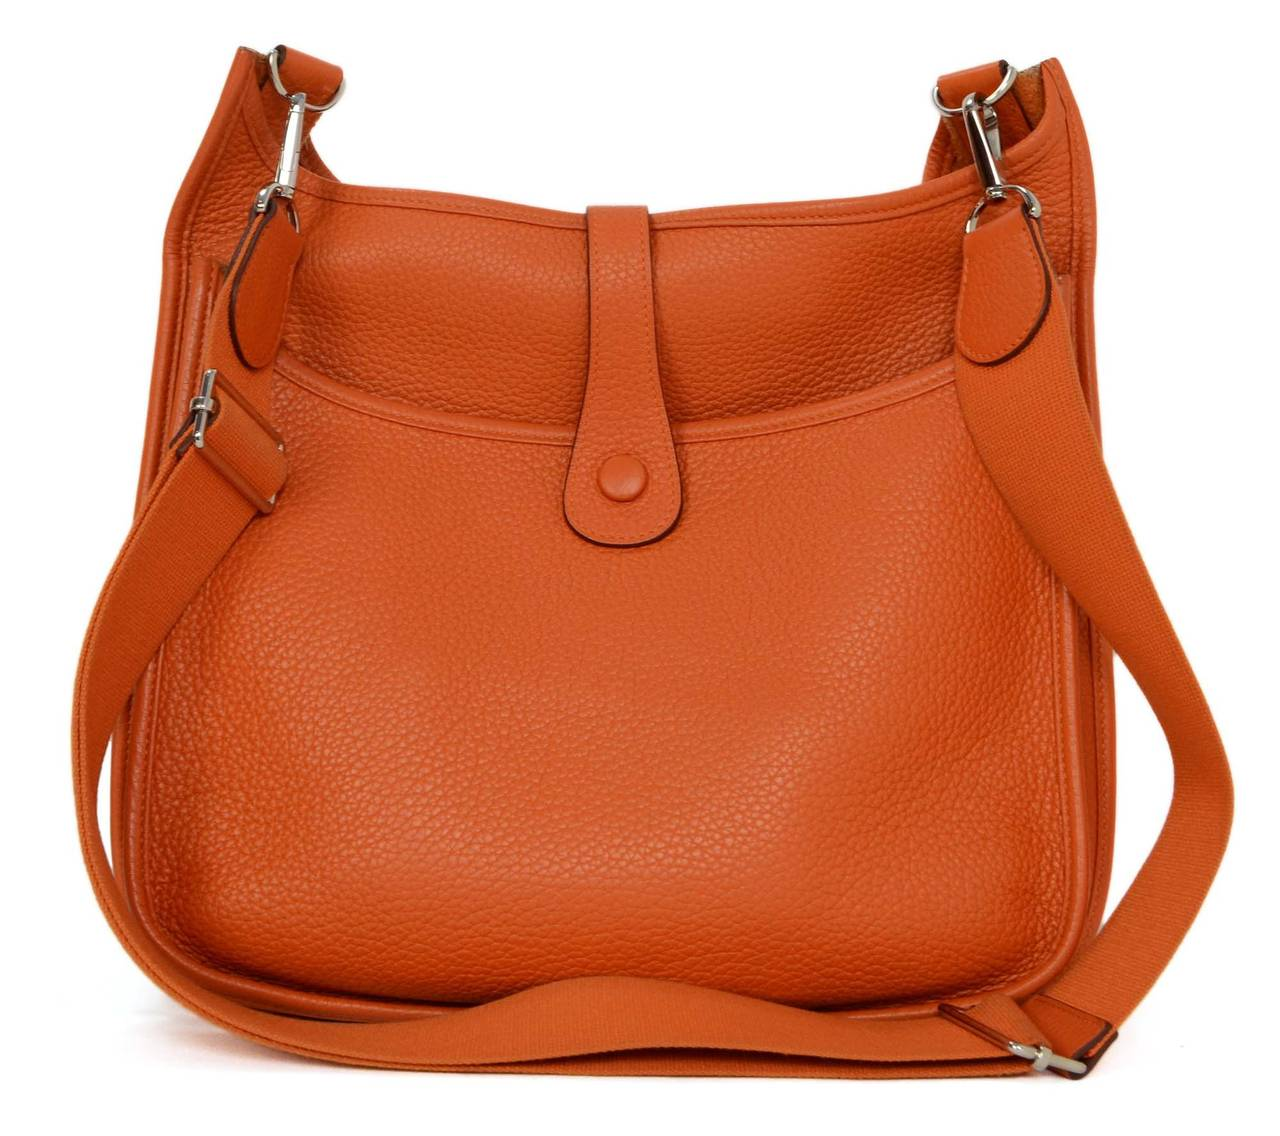 b6cc8fb8c029 ... france hermes orange clemence leather evelyne iii gm bag phw in  excellent condition for sale in